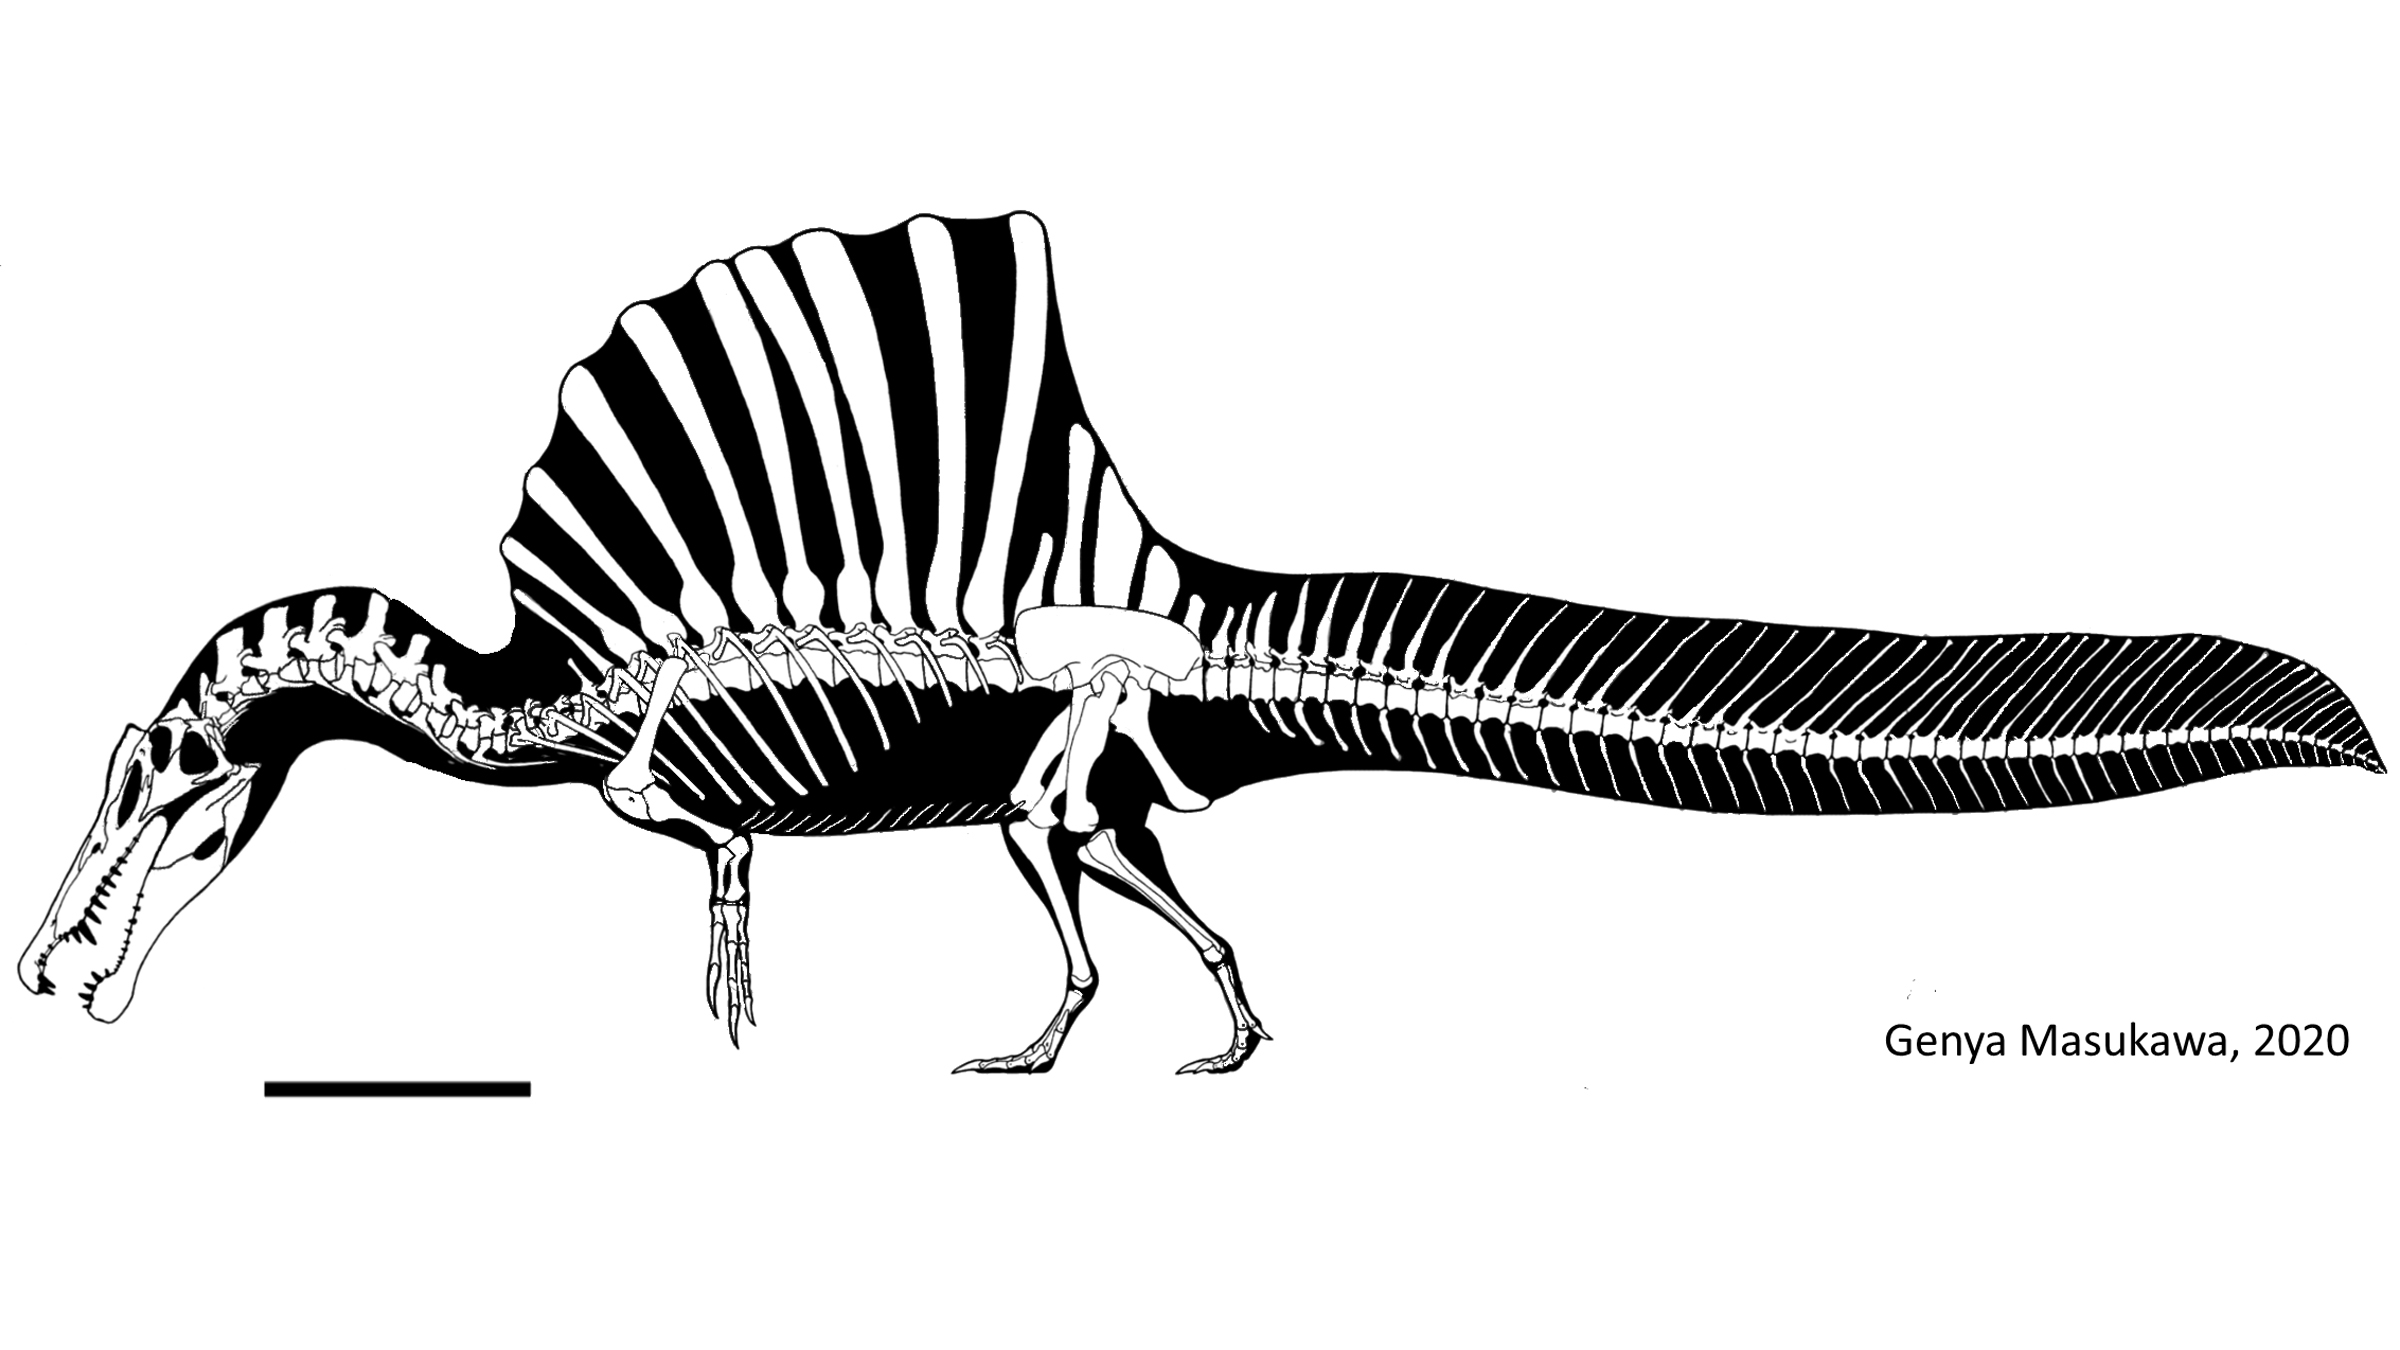 Spinosaurus's skeleton, including its famous back sail and tail plume. Scale bar is 1 meter (3.2 feet).